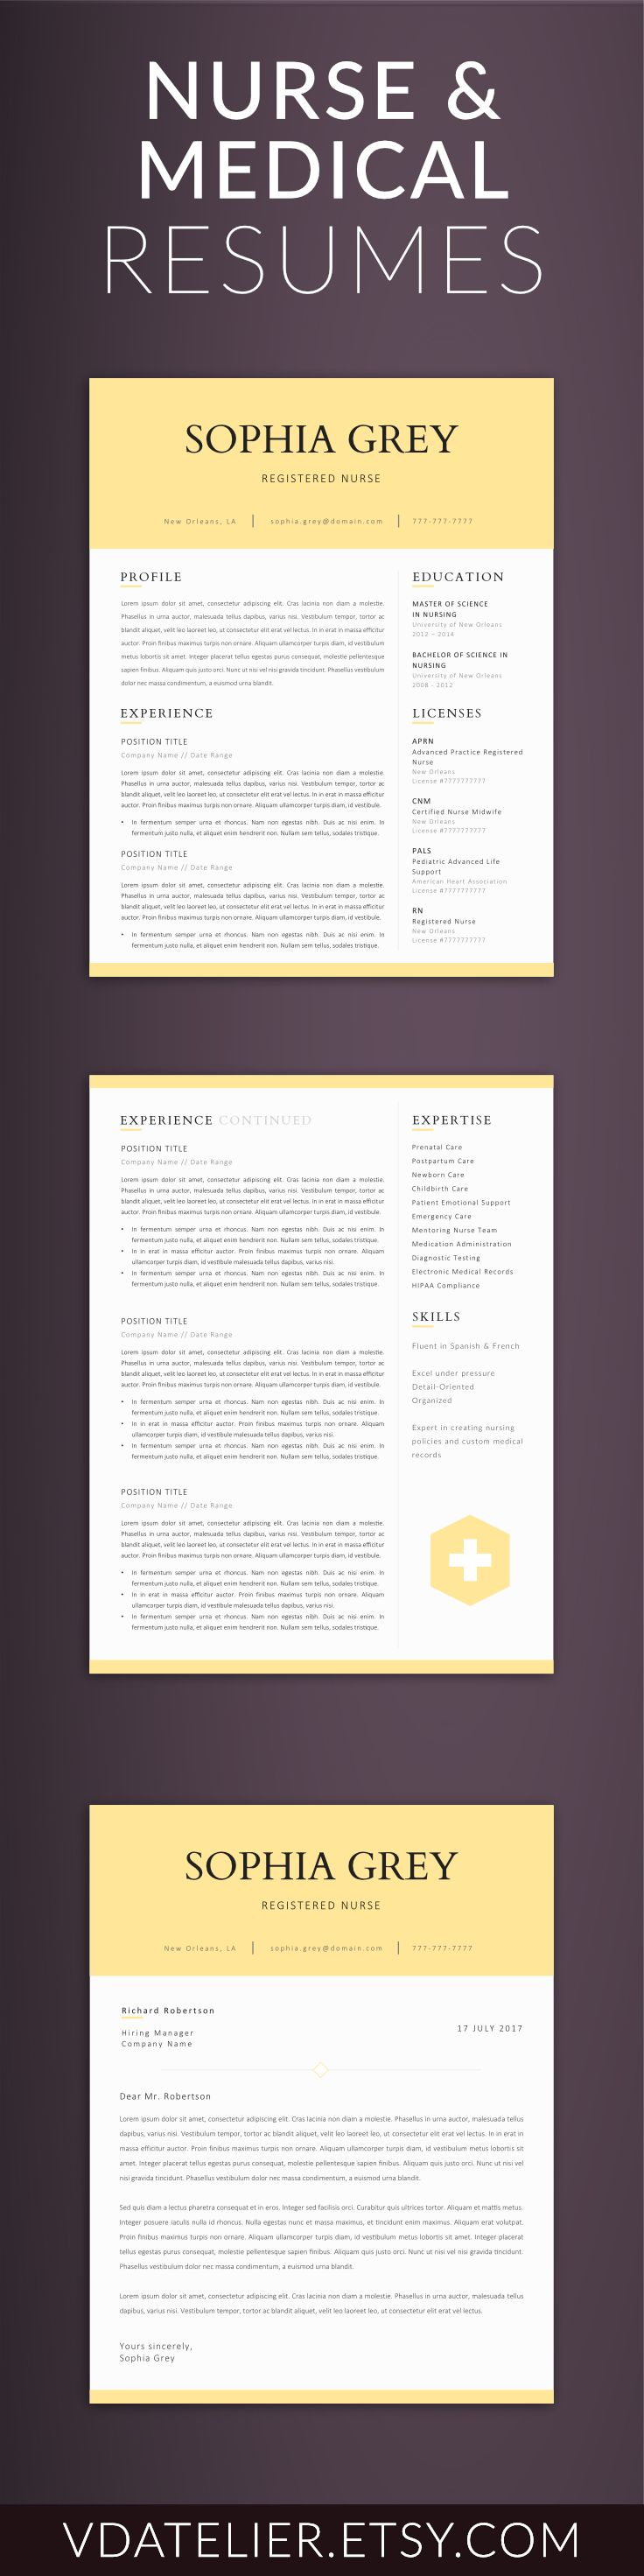 Cv Template Newly Qualified Nurse  Buy Original Essay